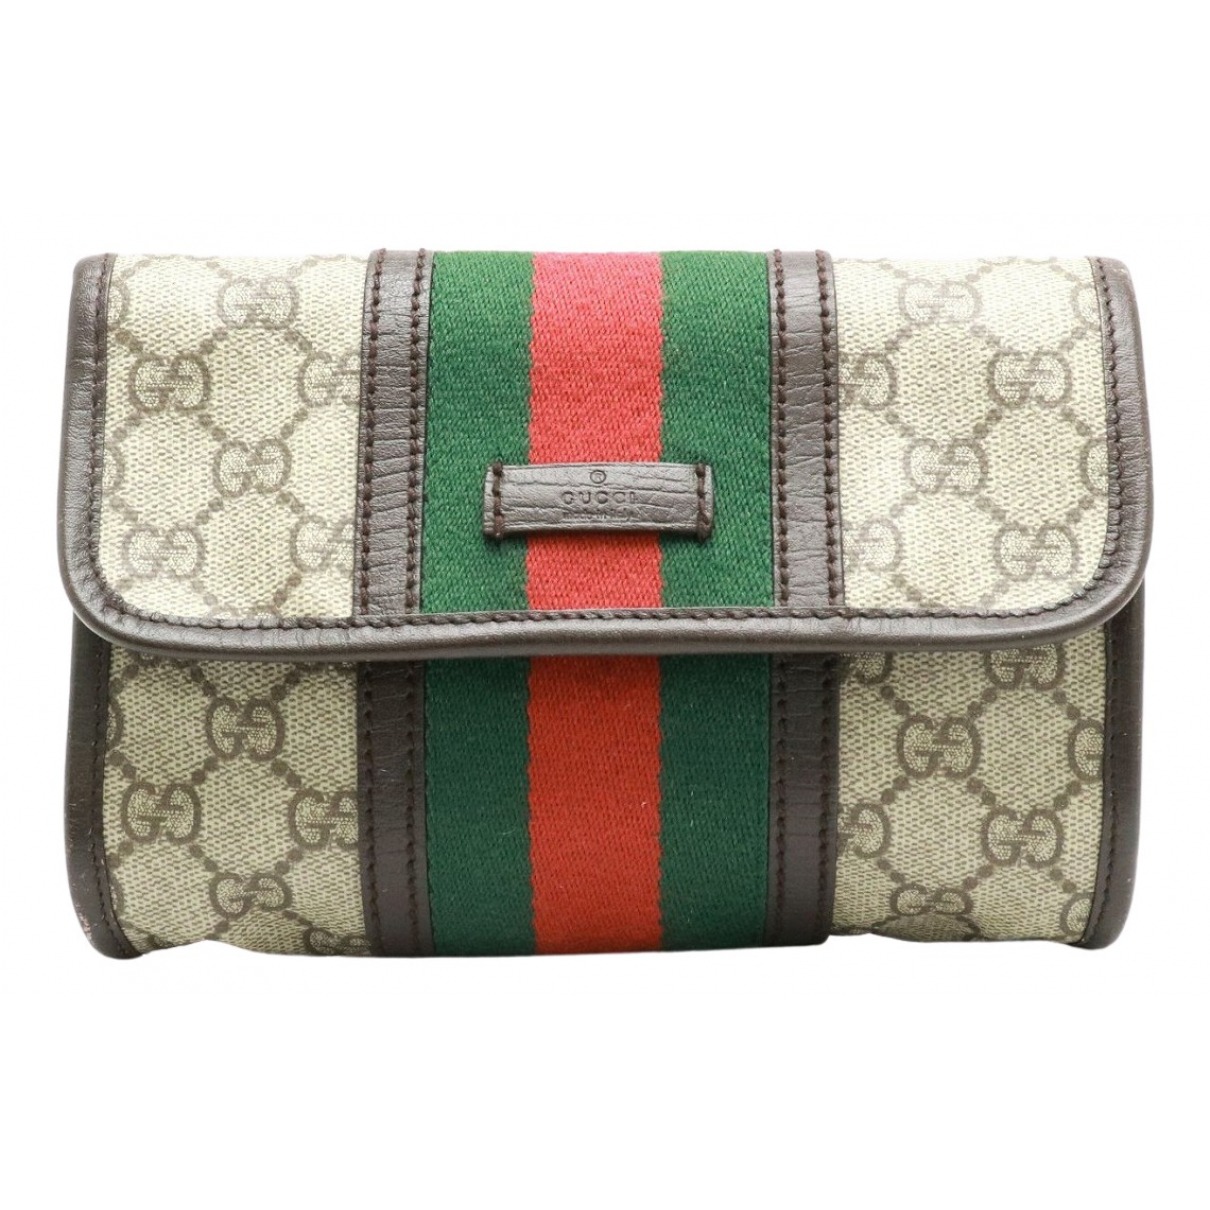 Gucci Ophidia Beige Cloth Clutch bag for Women N